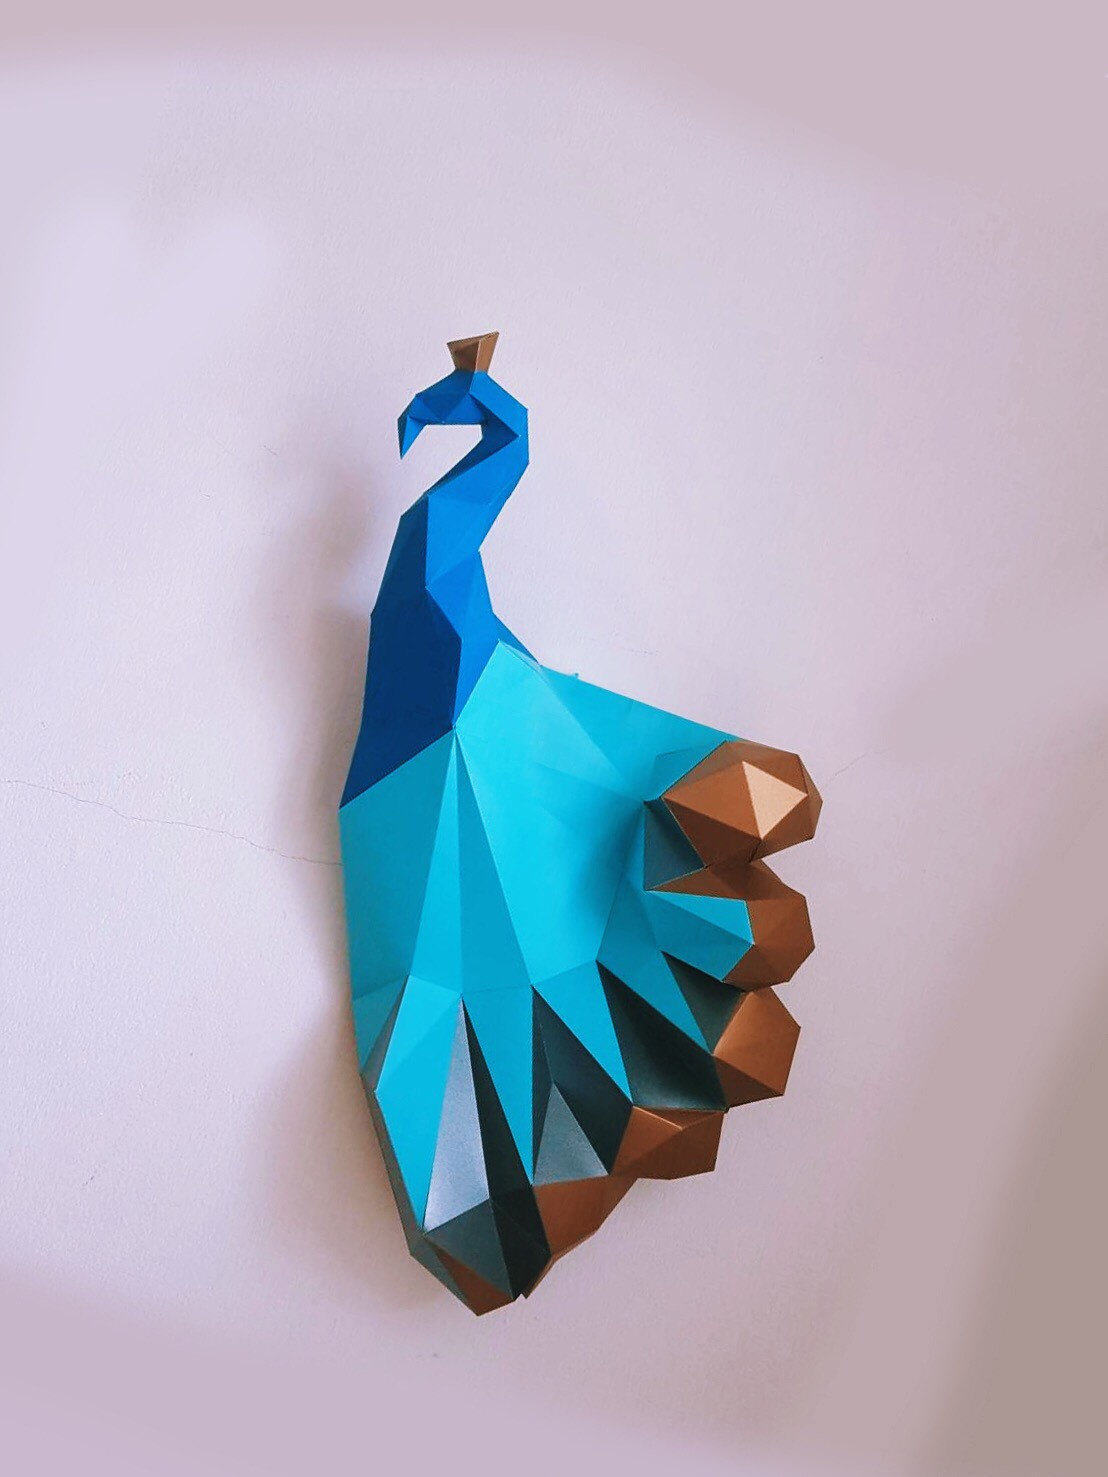 Paper Craft Diy Peacock With Golden Tail Magical Model Etsy